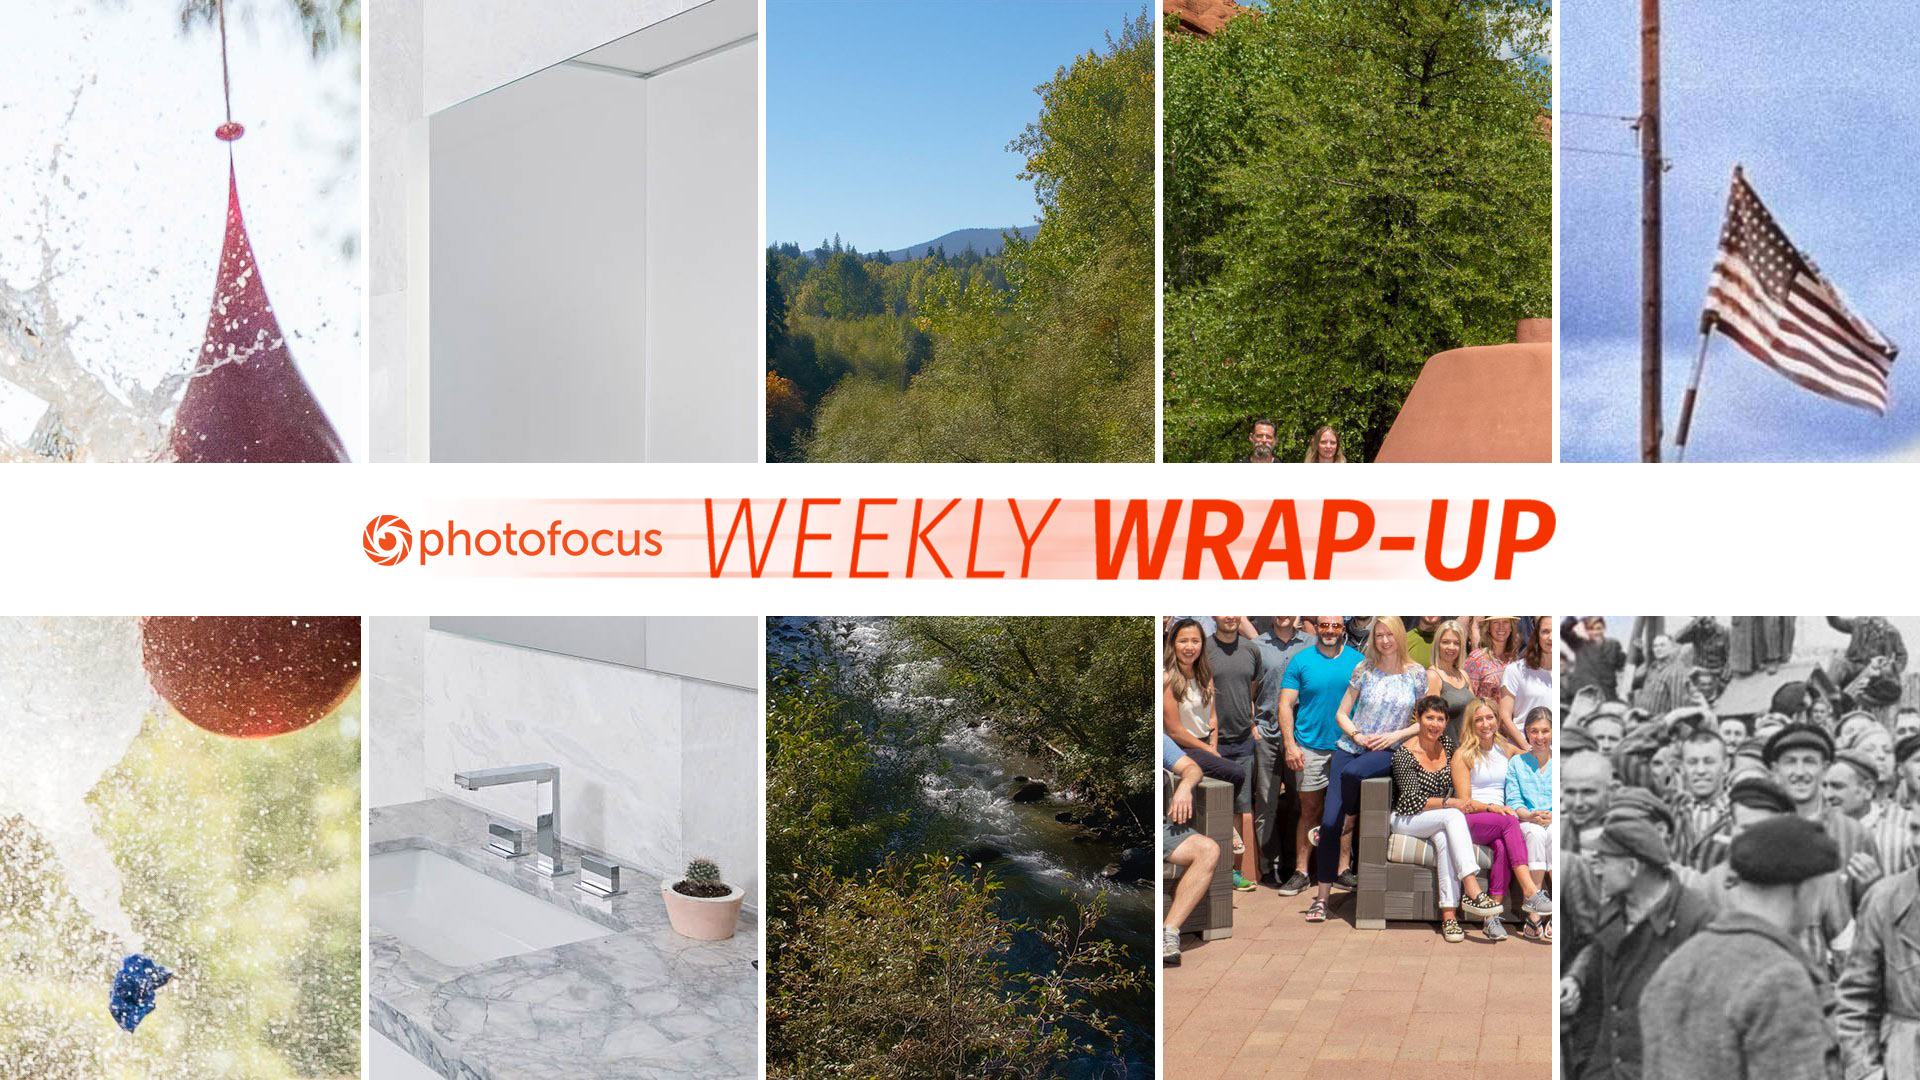 The Weekly Wrap-Up for June 3-8, 2019